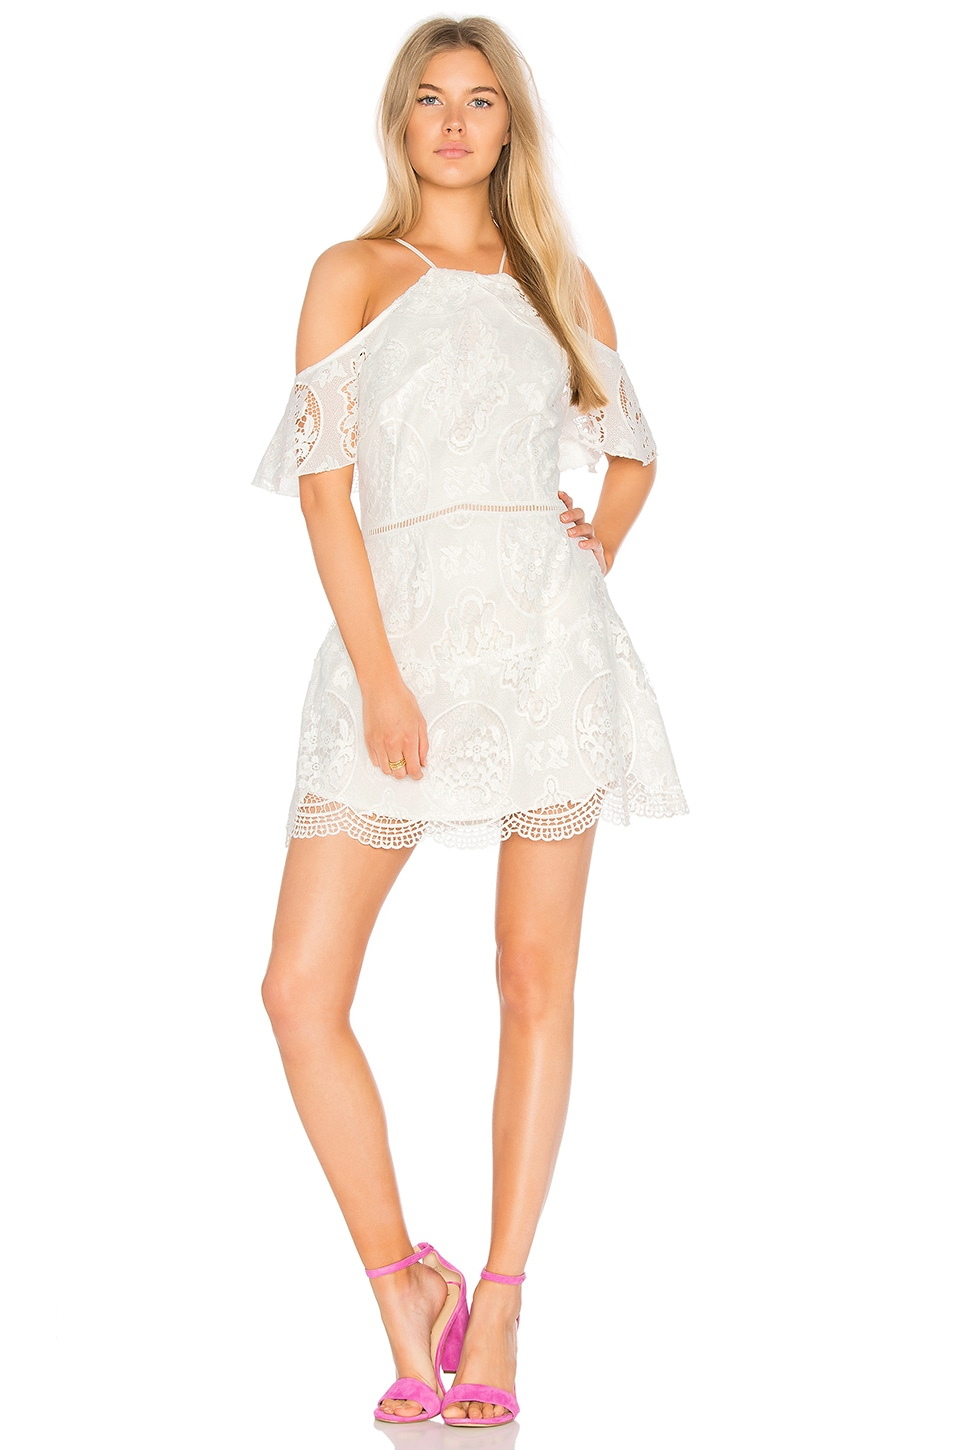 Ellie Lace Mini Dress by Karina Grimaldi